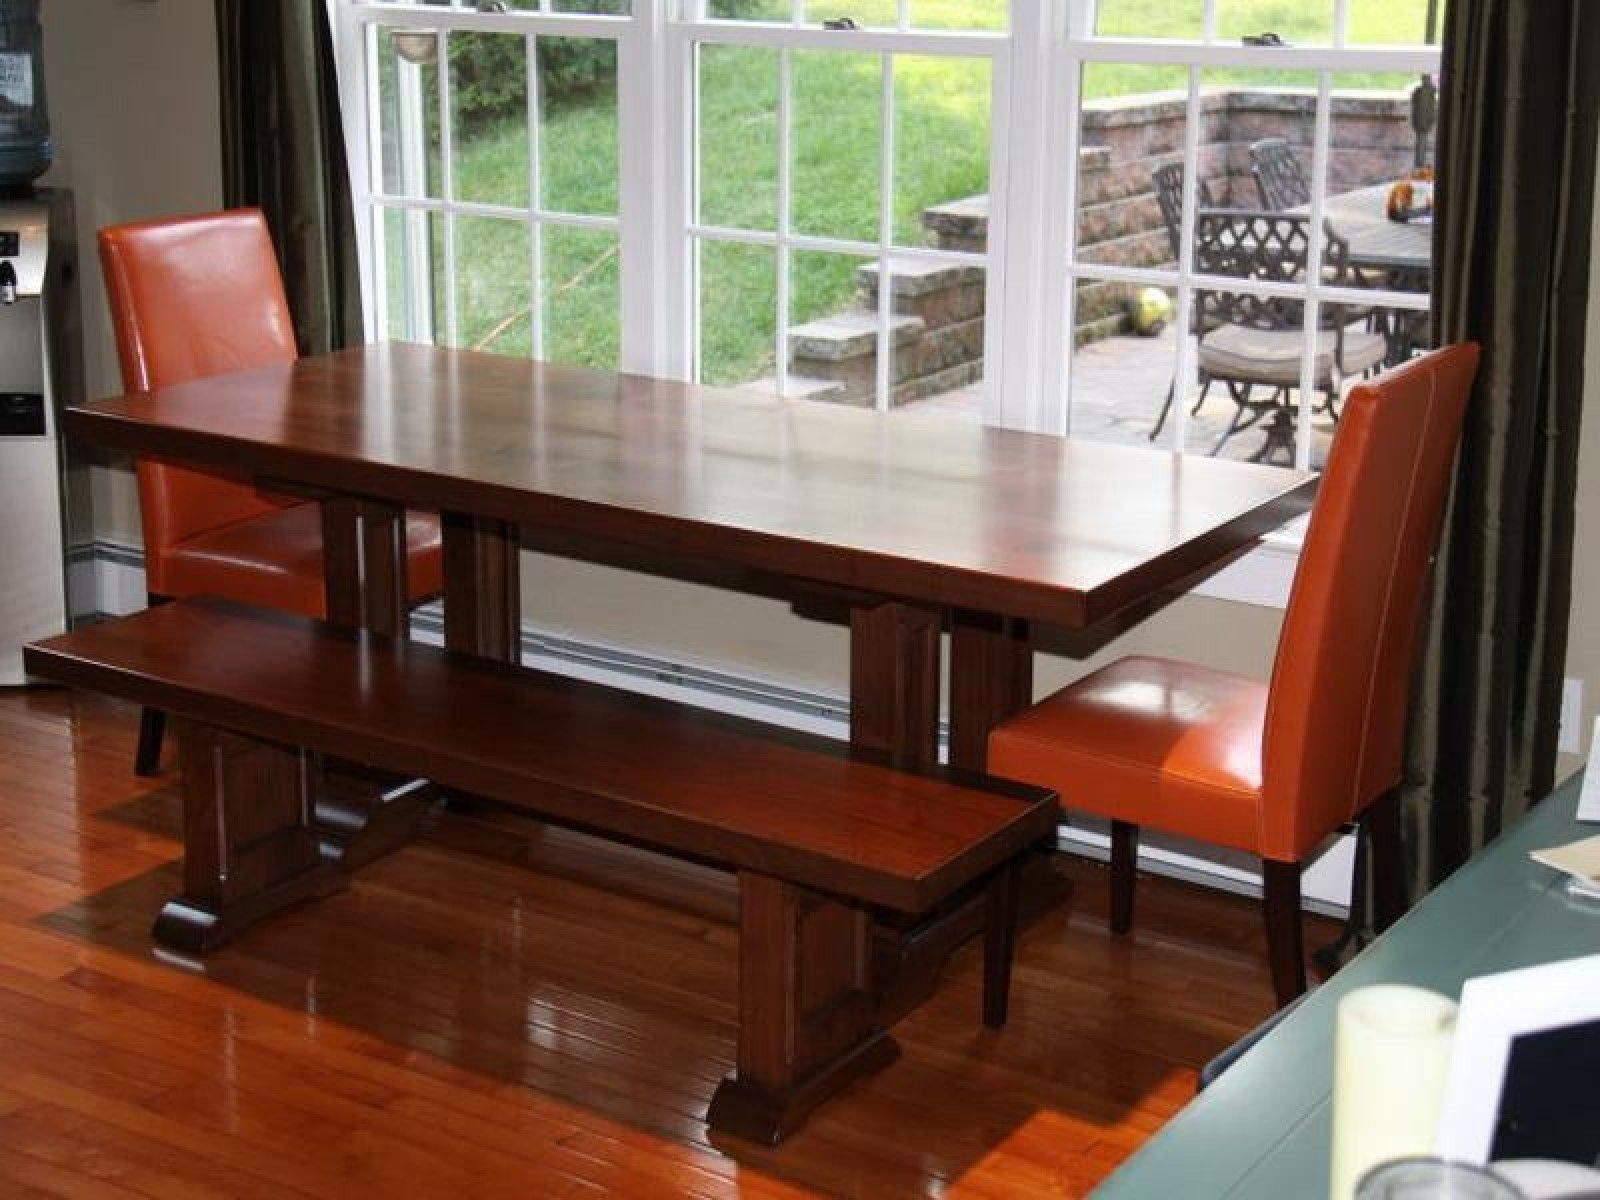 Modern White Polished Metal Based Dining Table With Brown Wooden Mesmerizing Black And Brown Dining Room Sets Inspiration